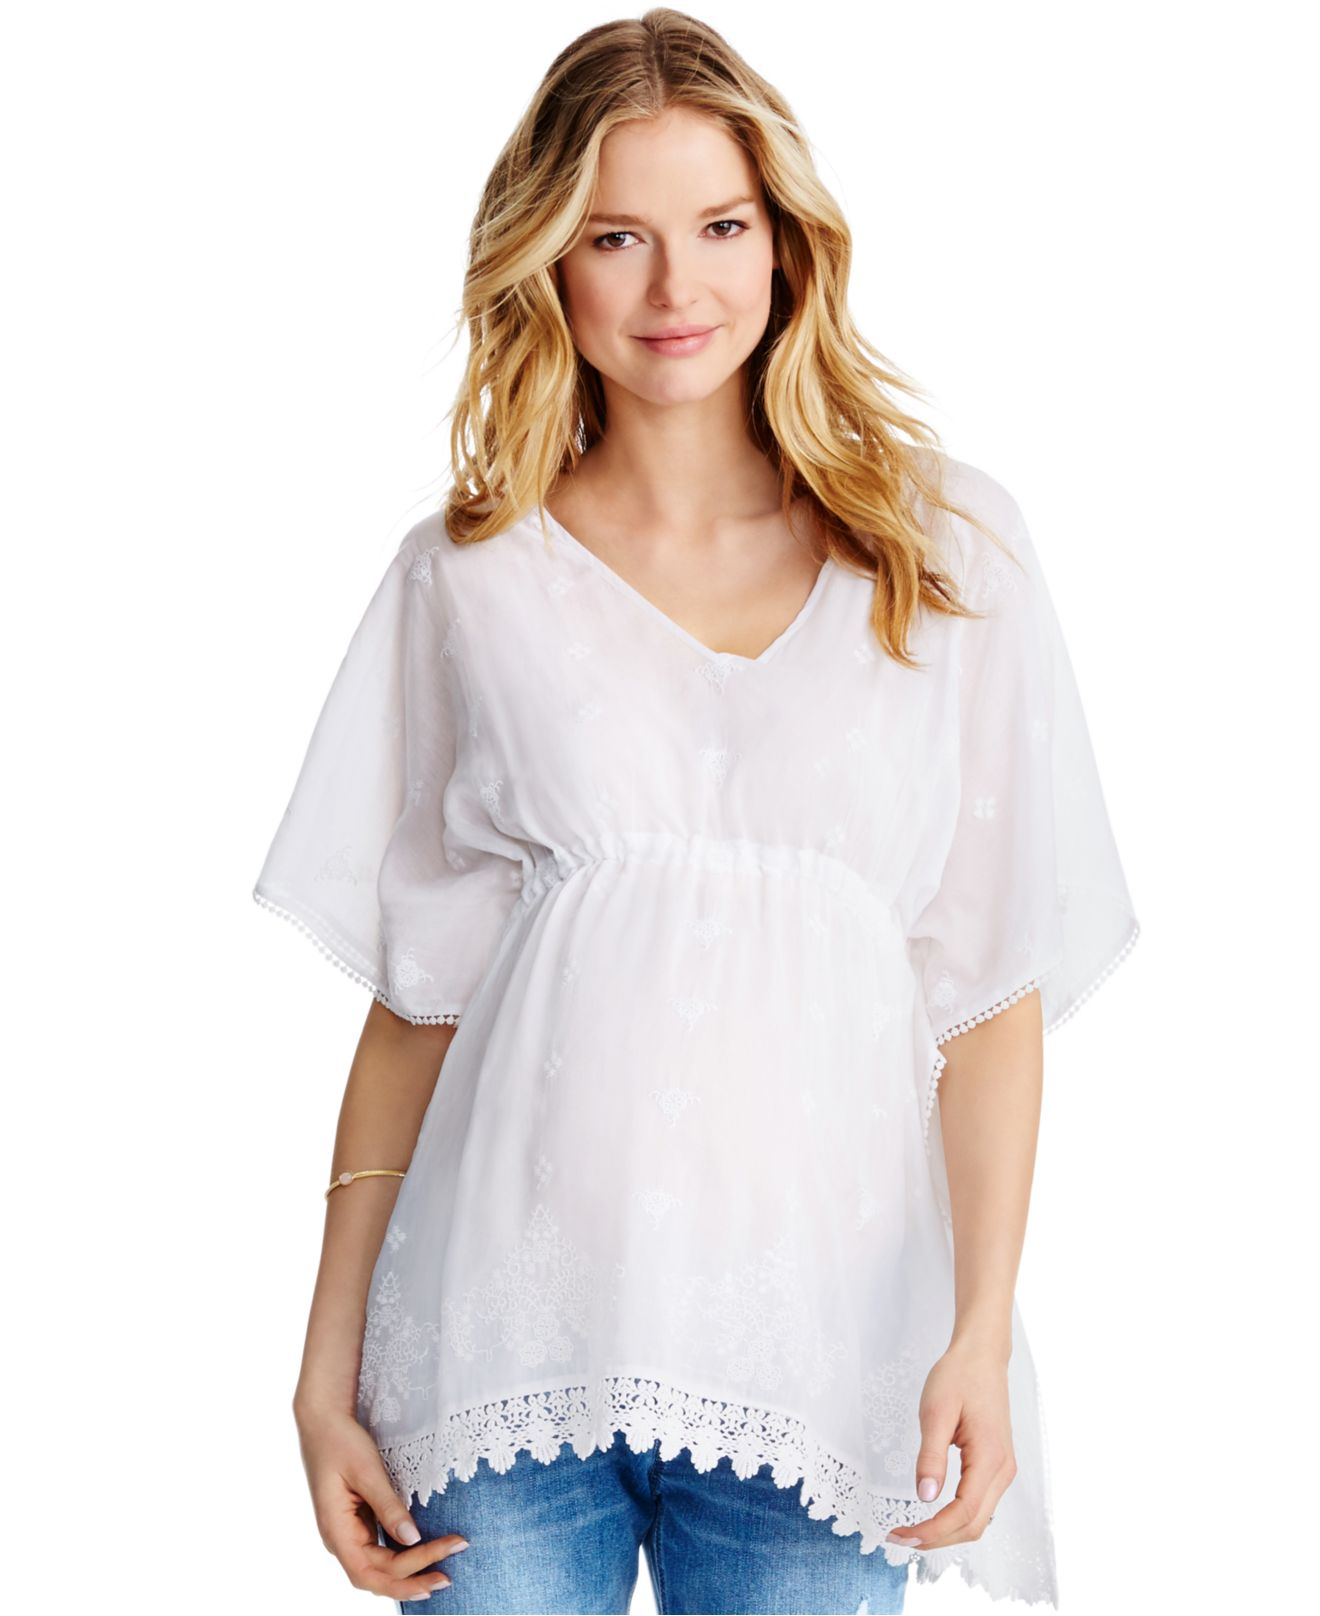 Jessica Simpson Maternity Online Clothes